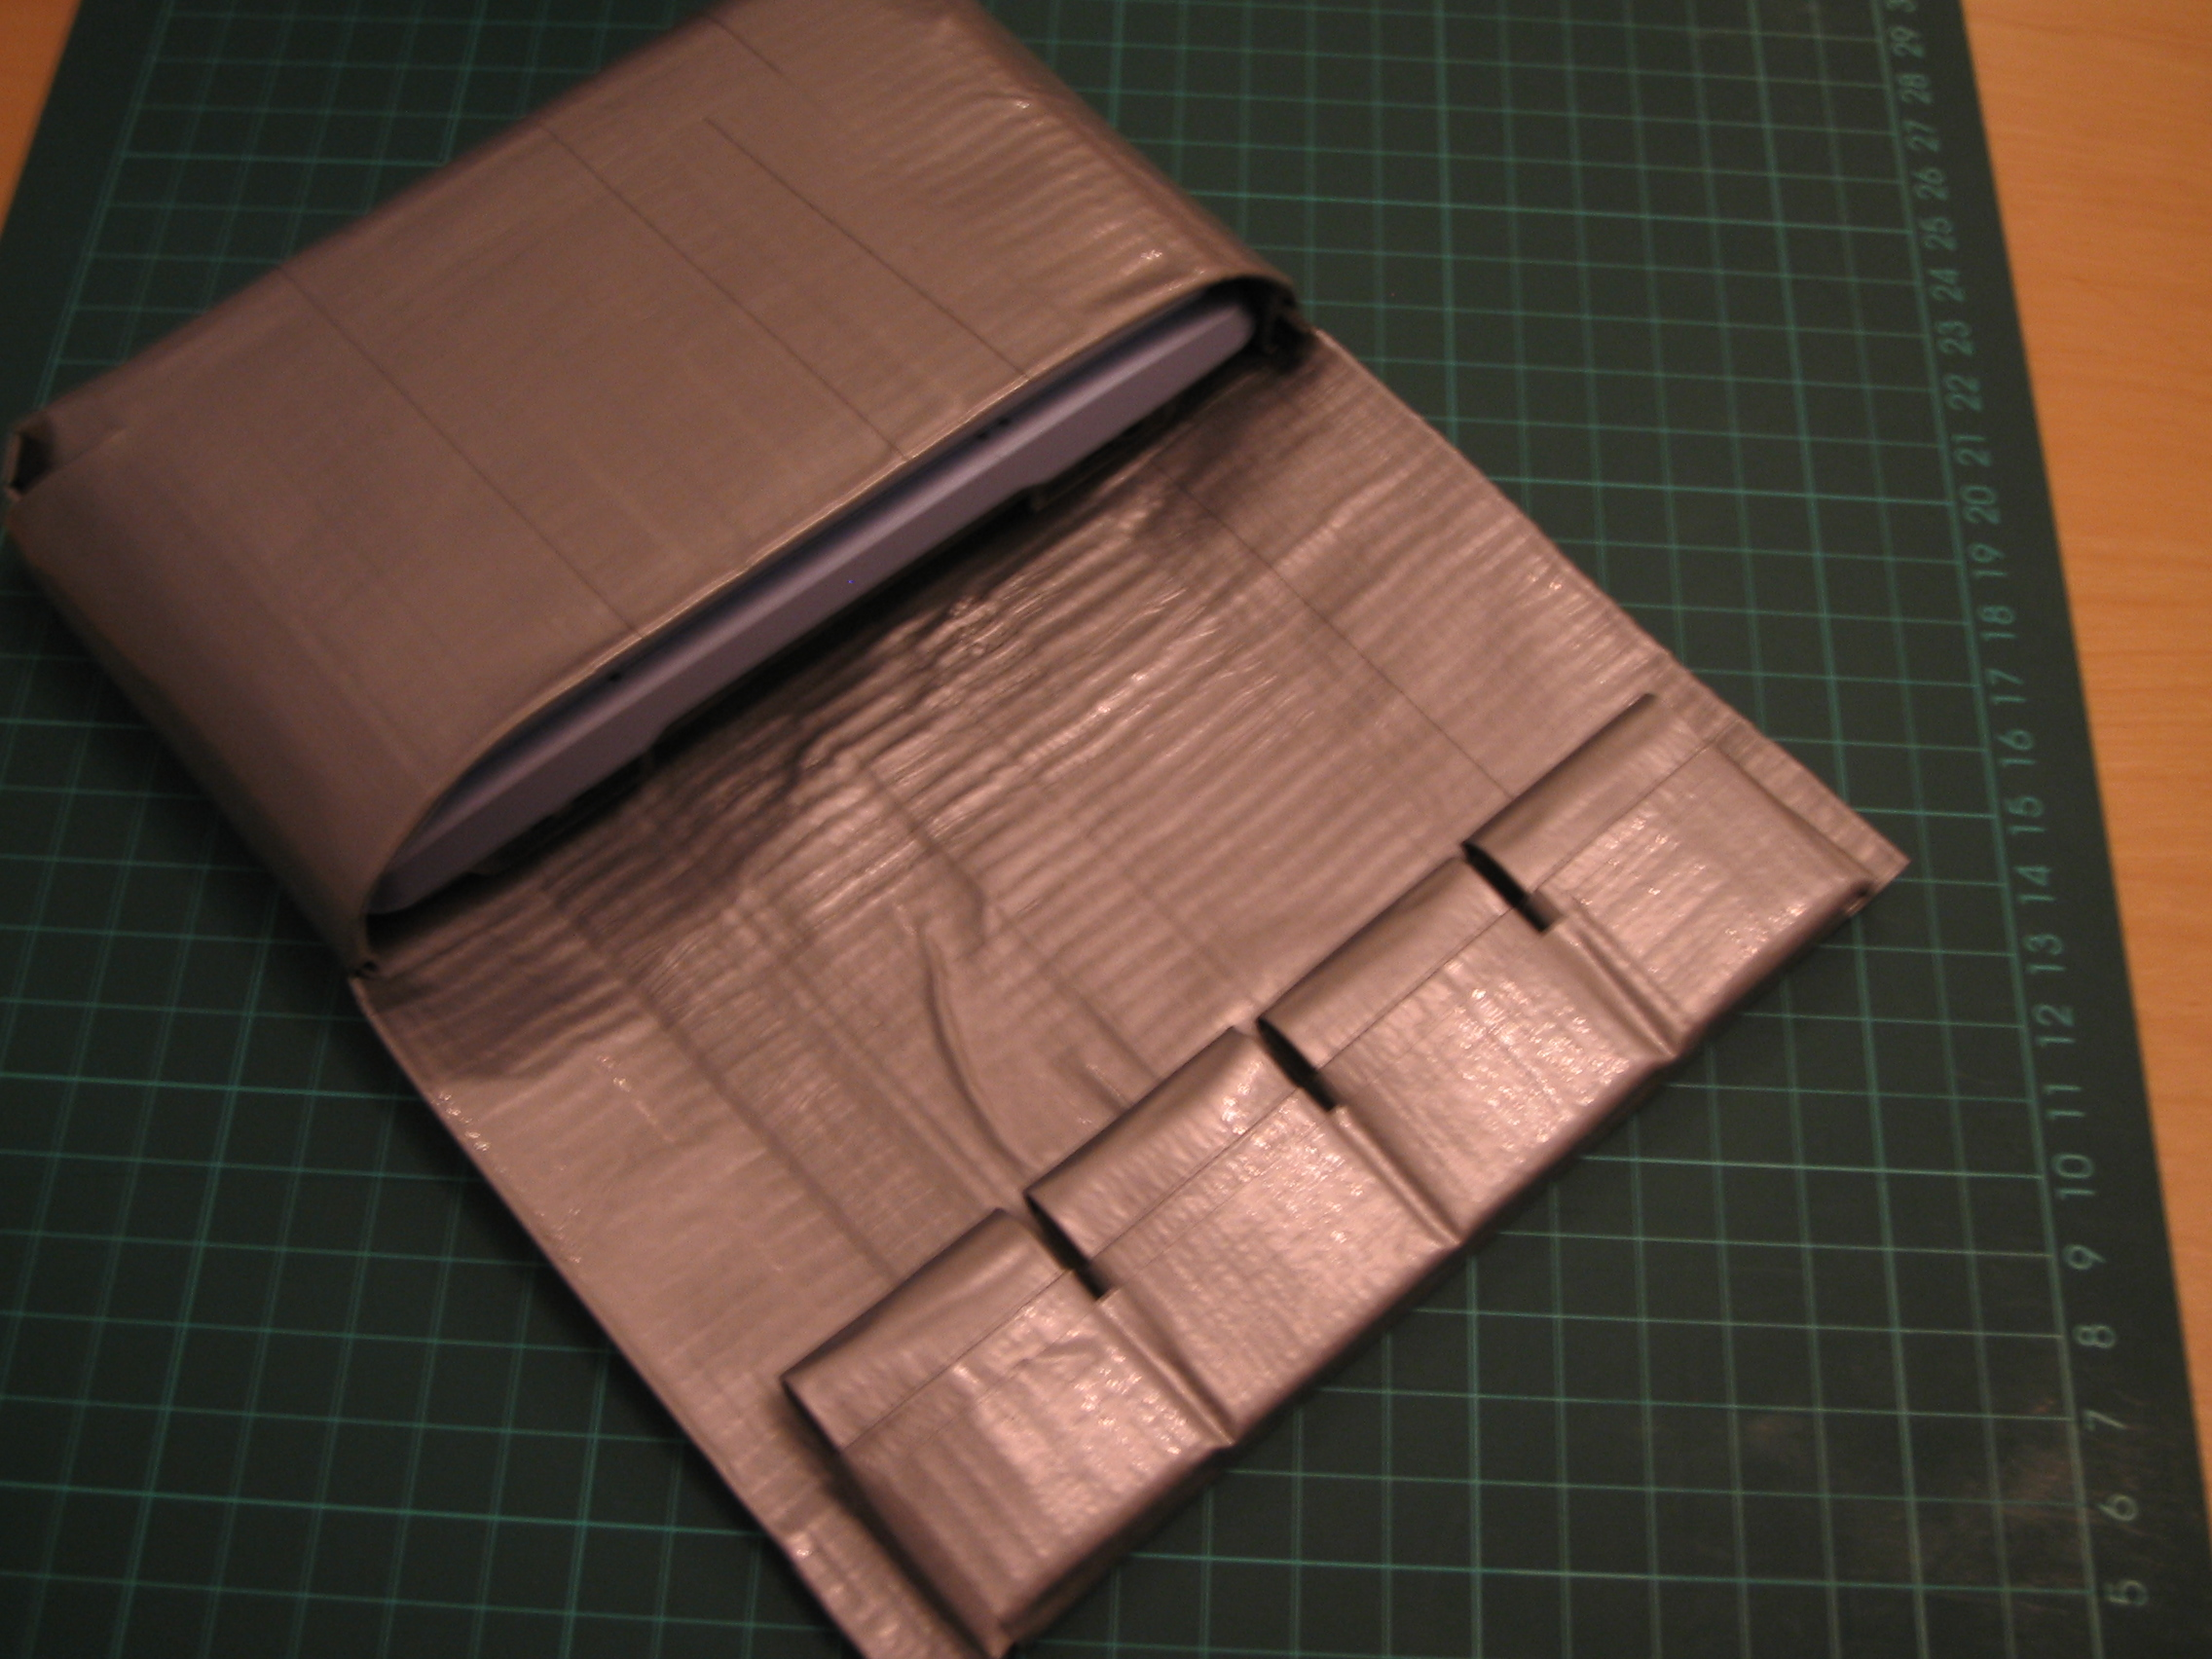 Duck Tape Nintendo DS (Phat) and games holder